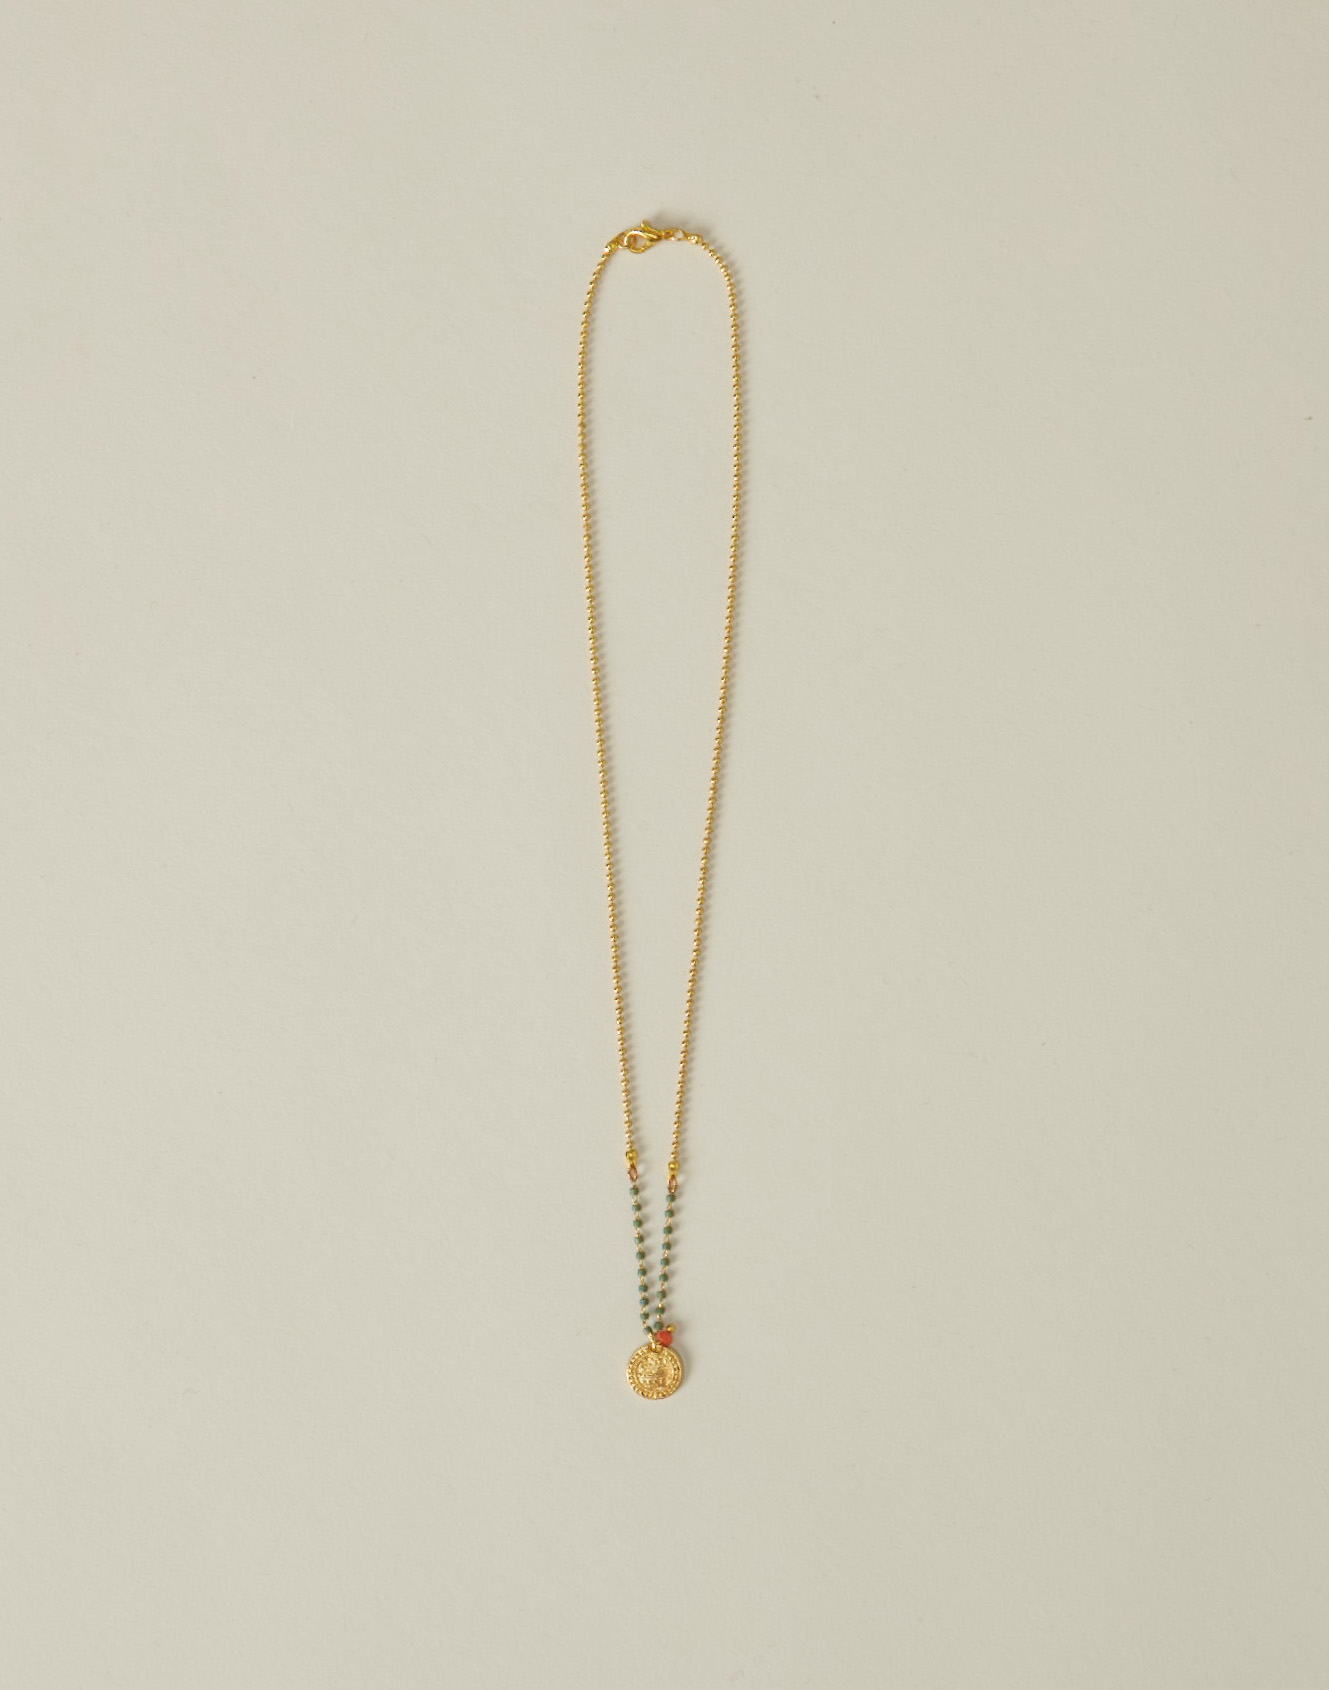 Janapese chain necklace with medal